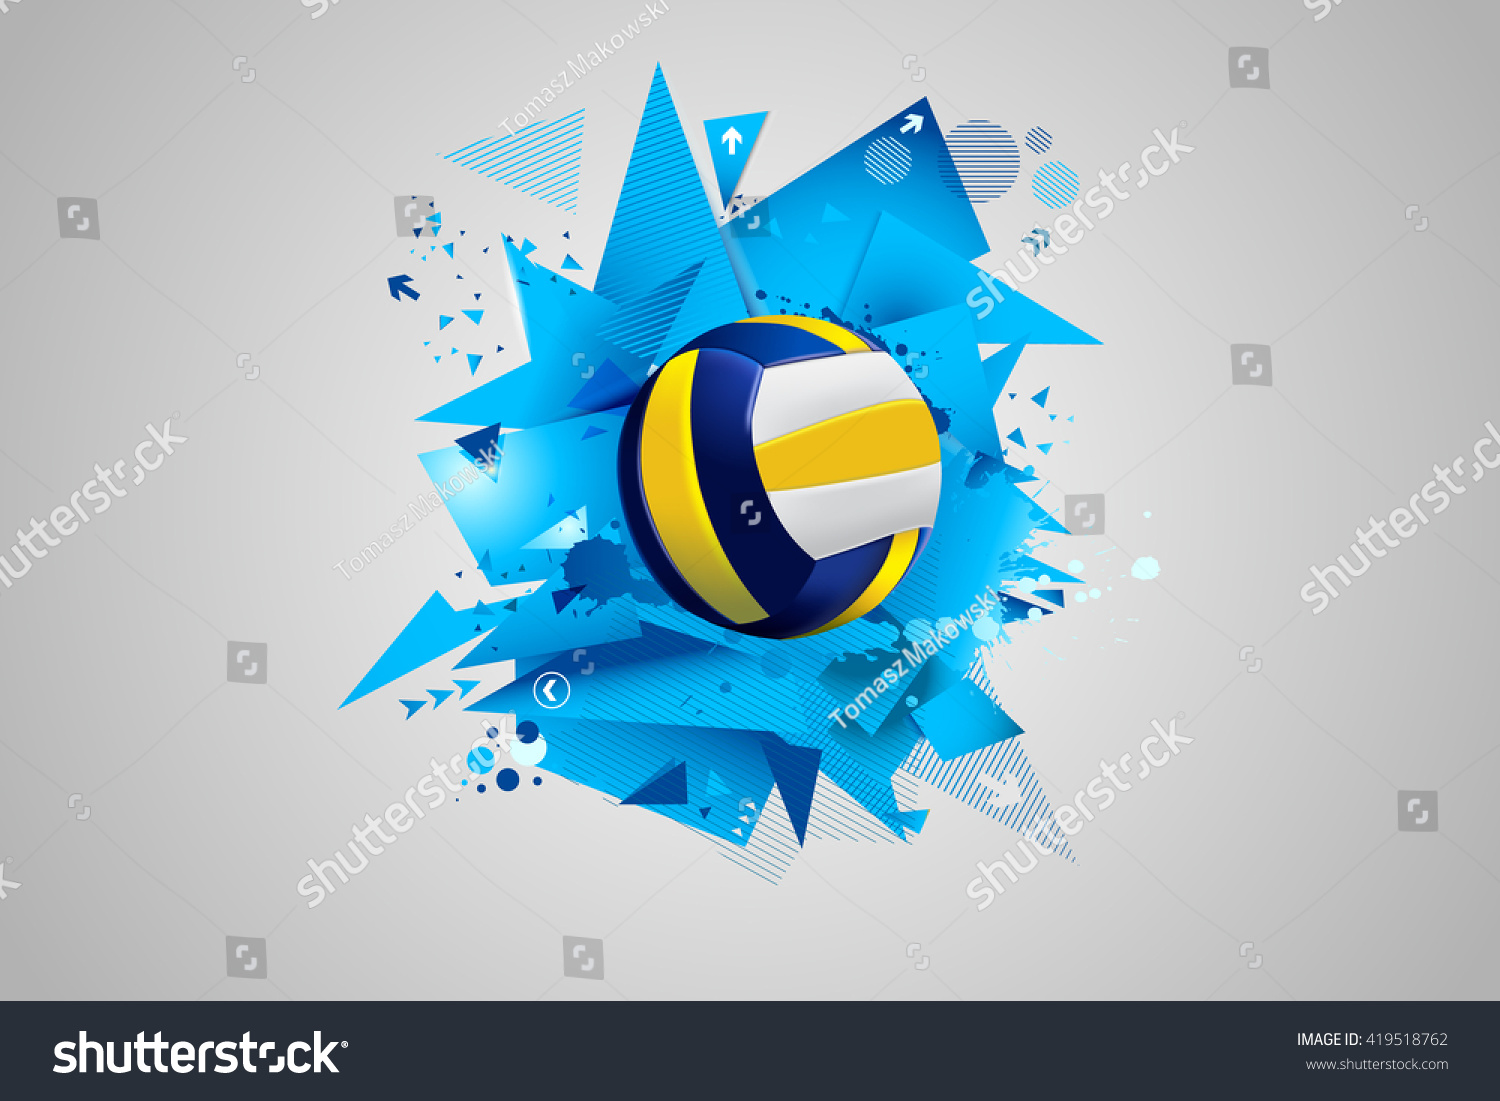 Volleyball Abstract Stock Photos Volleyball Abstract: Volleyball Abstract Stock Vector 419518762 : Shutterstock